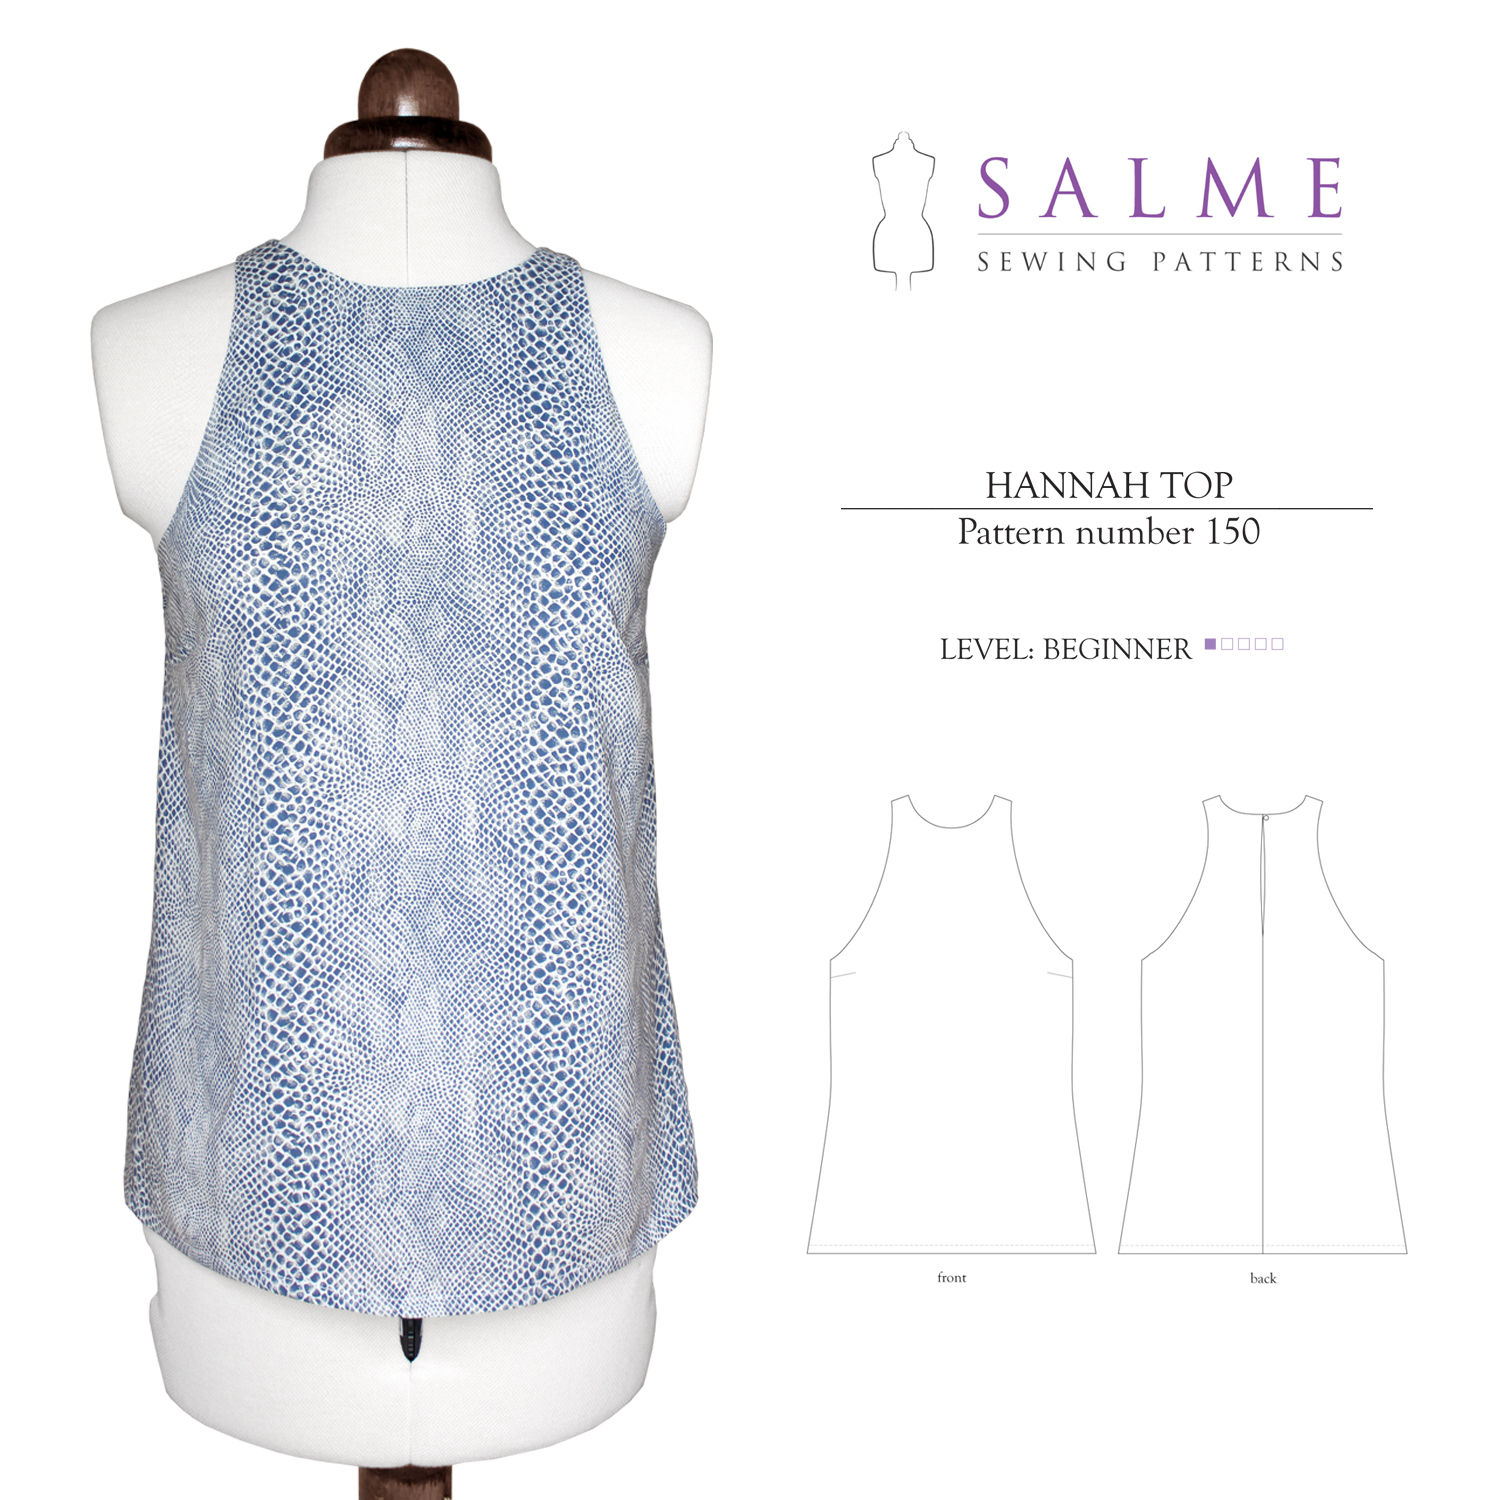 Salme sewing patterns 150 hannah top downloadable pattern prevnext jeuxipadfo Image collections